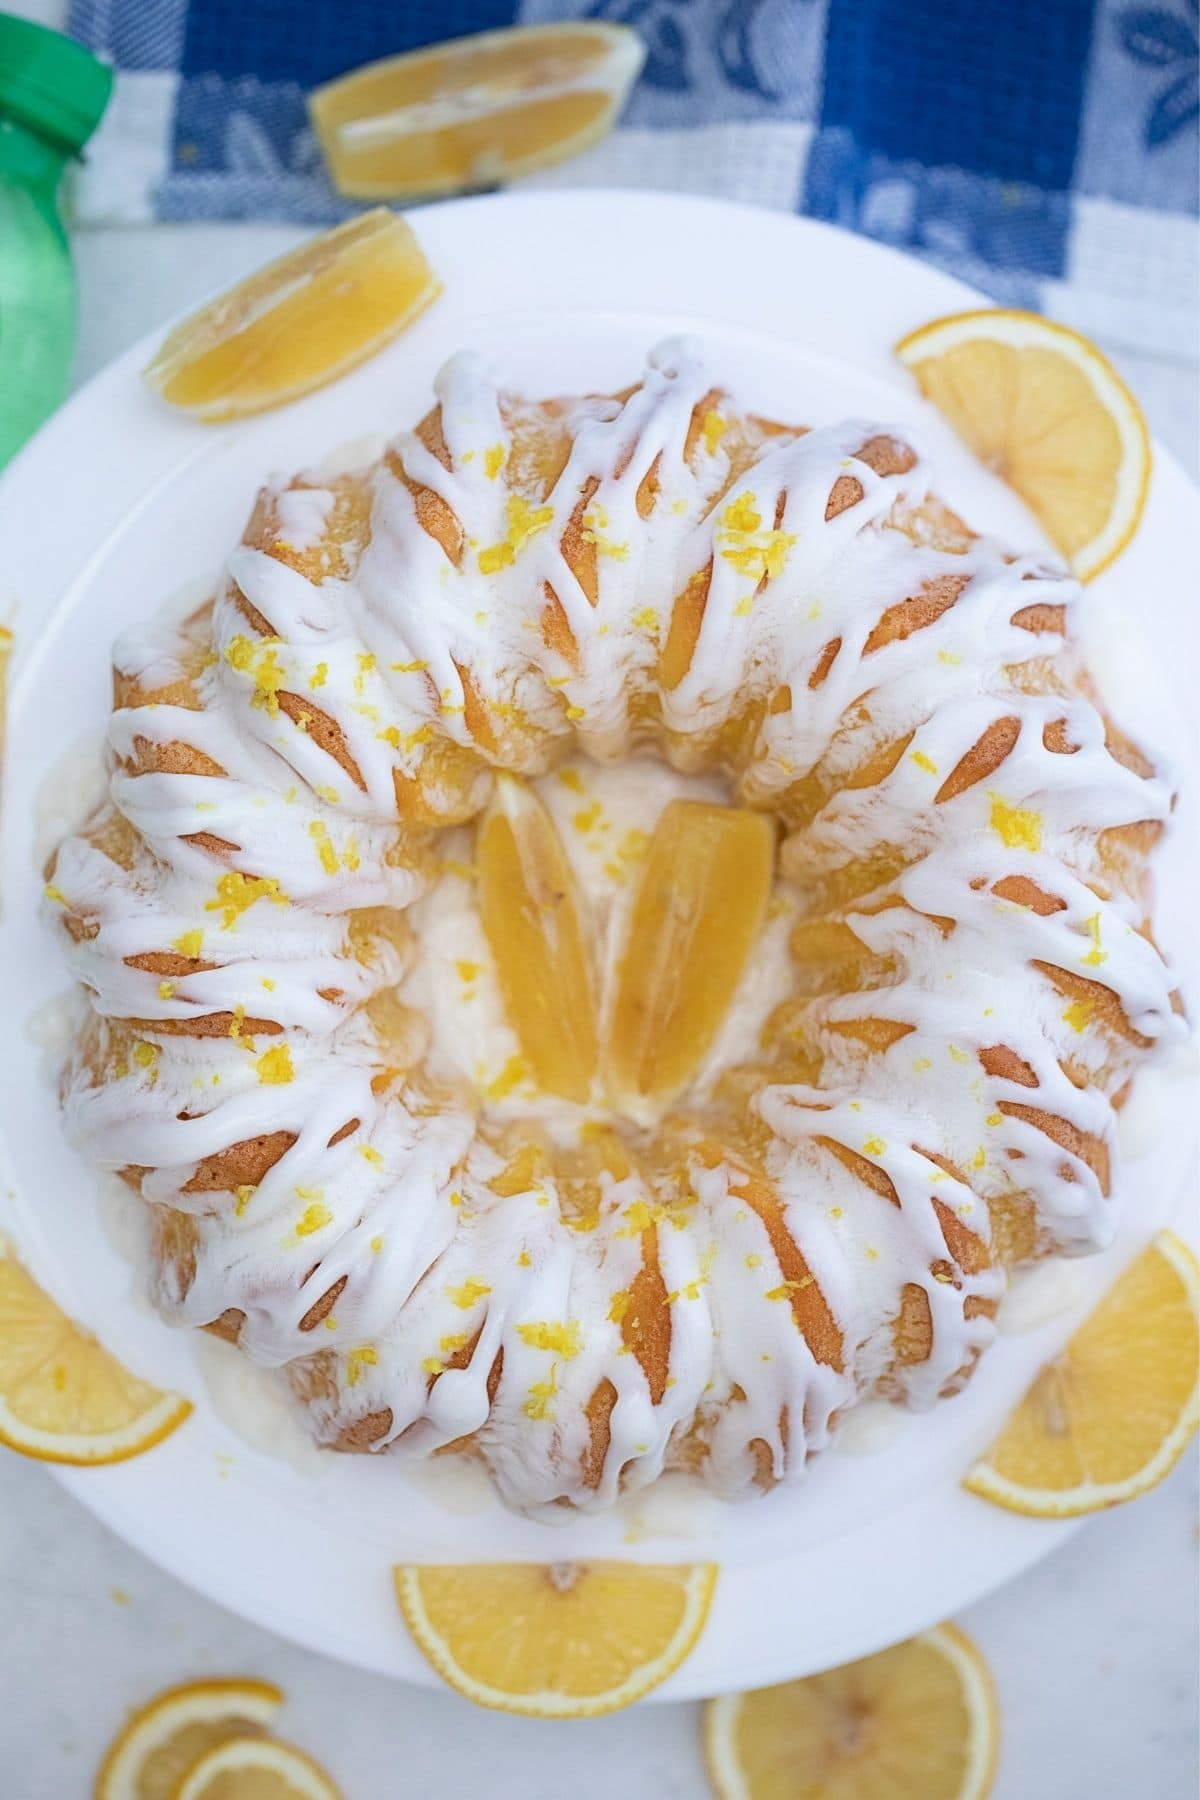 Image o bundt cake with white glaze on white plate from above